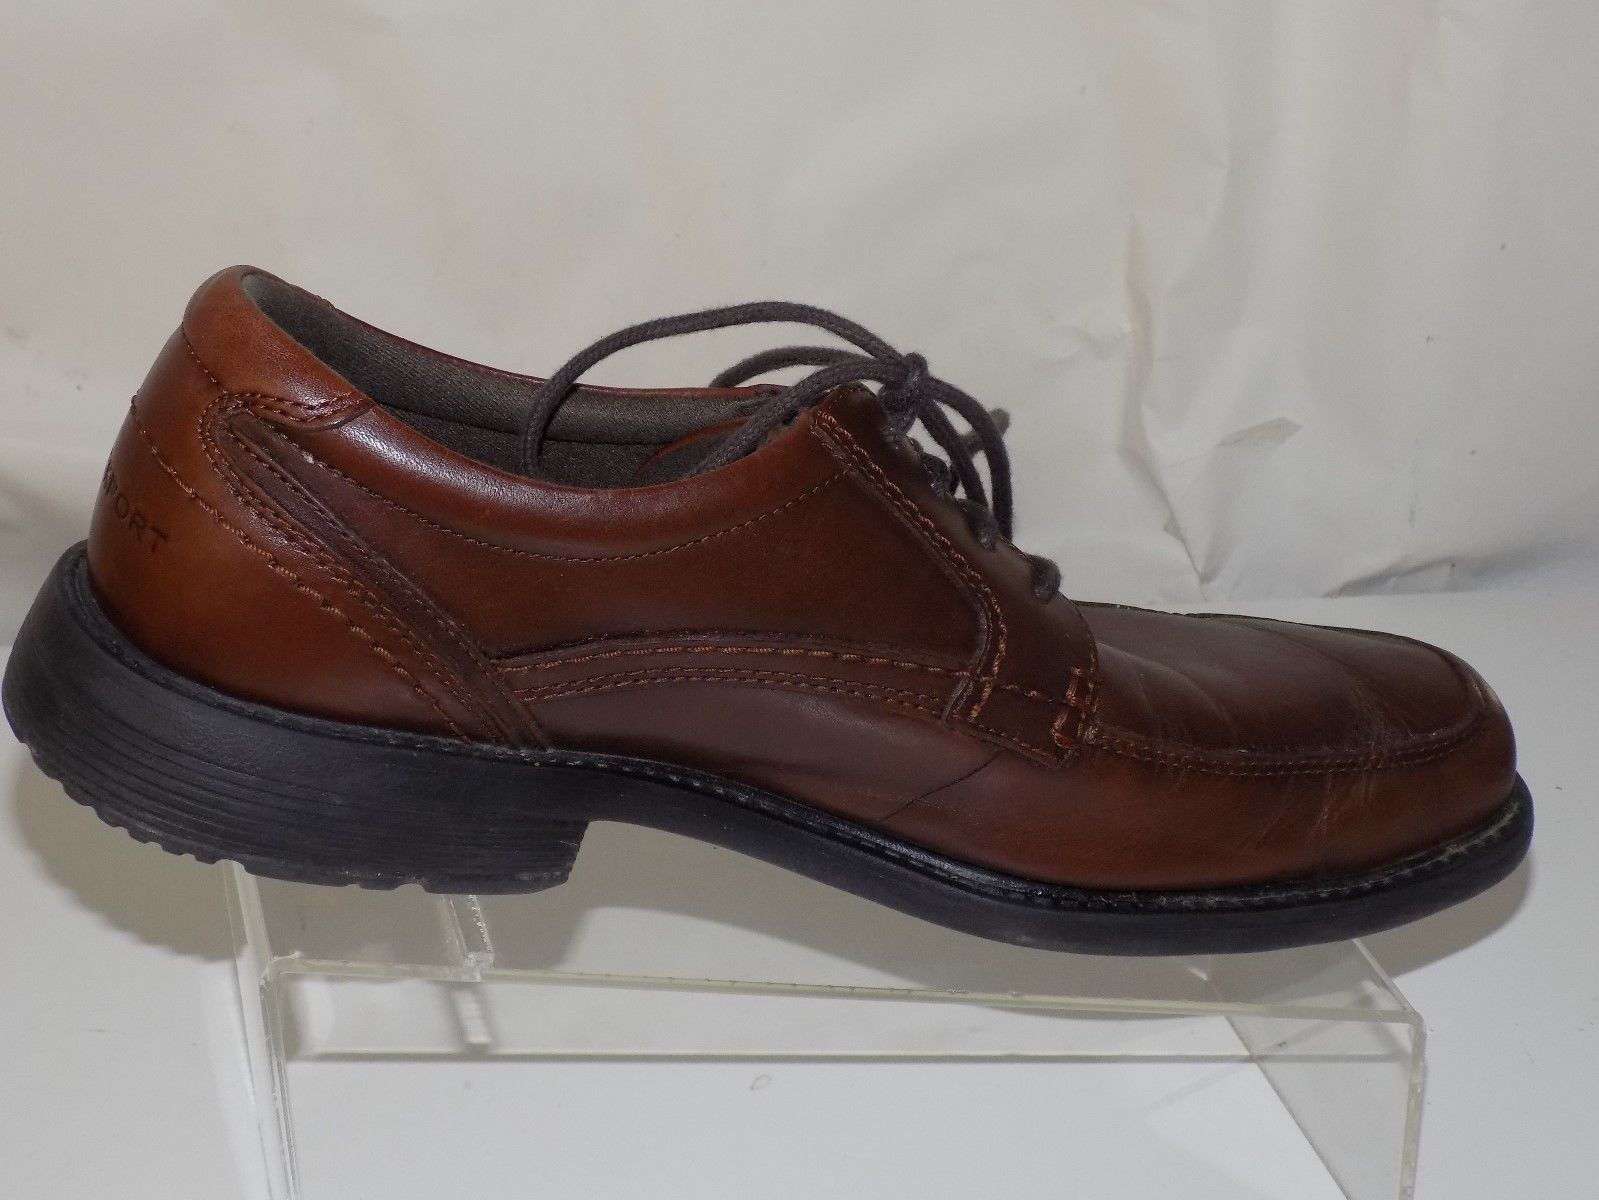 New Fashion Rockport Xcs Womens Casual Lace Up Comfort Brown Leather Upper Shoes Sz 8.5m Flats Clothing, Shoes & Accessories